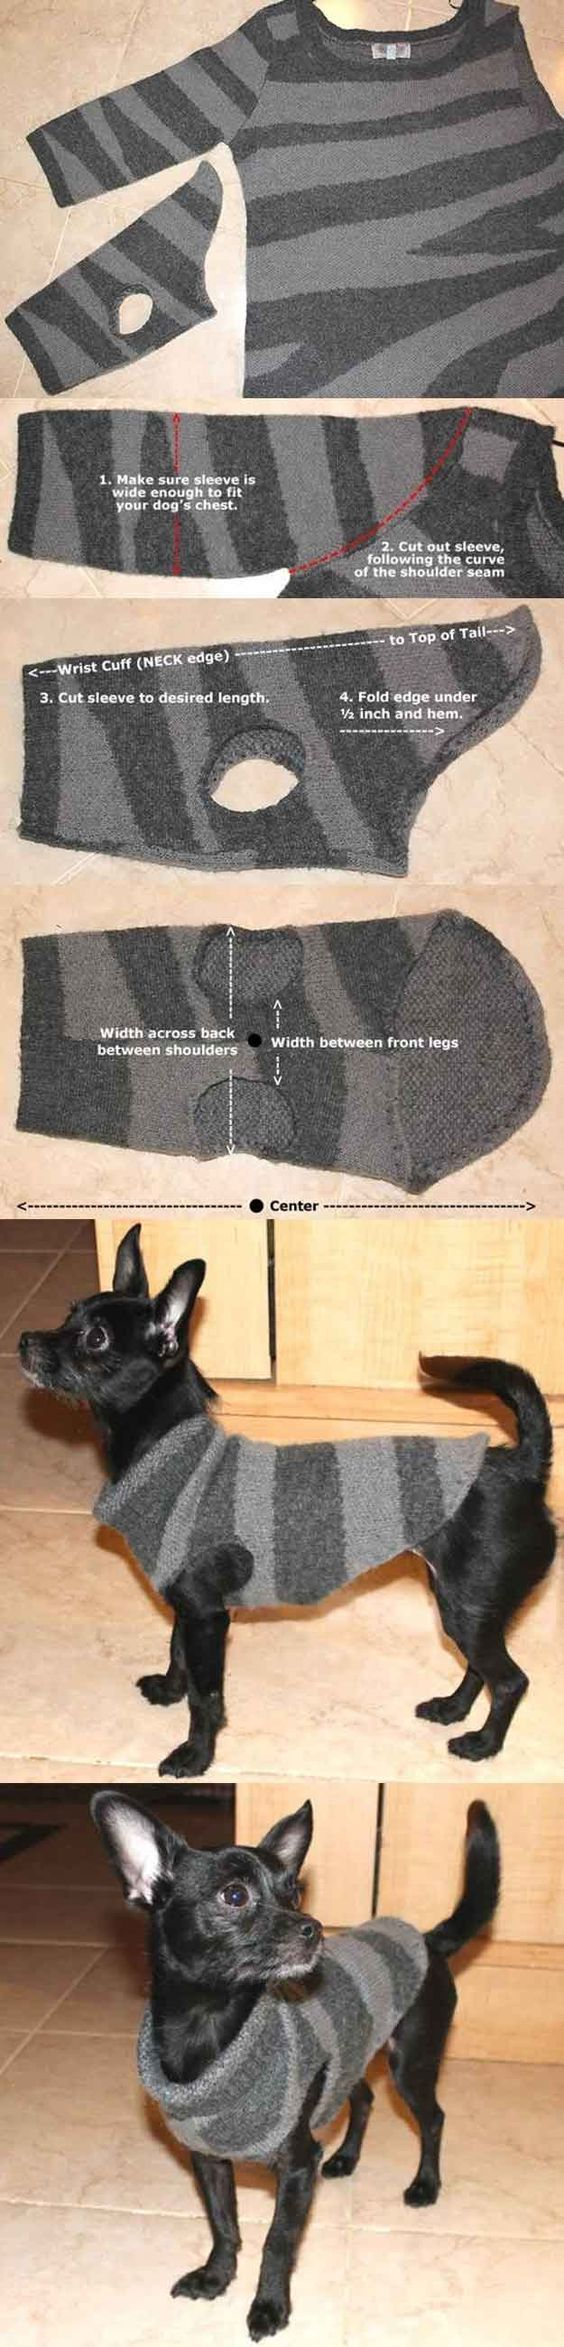 Check out 12 DIY Dog Clothes and Coats   Upcycled Dog Sweater by DIY Ready: